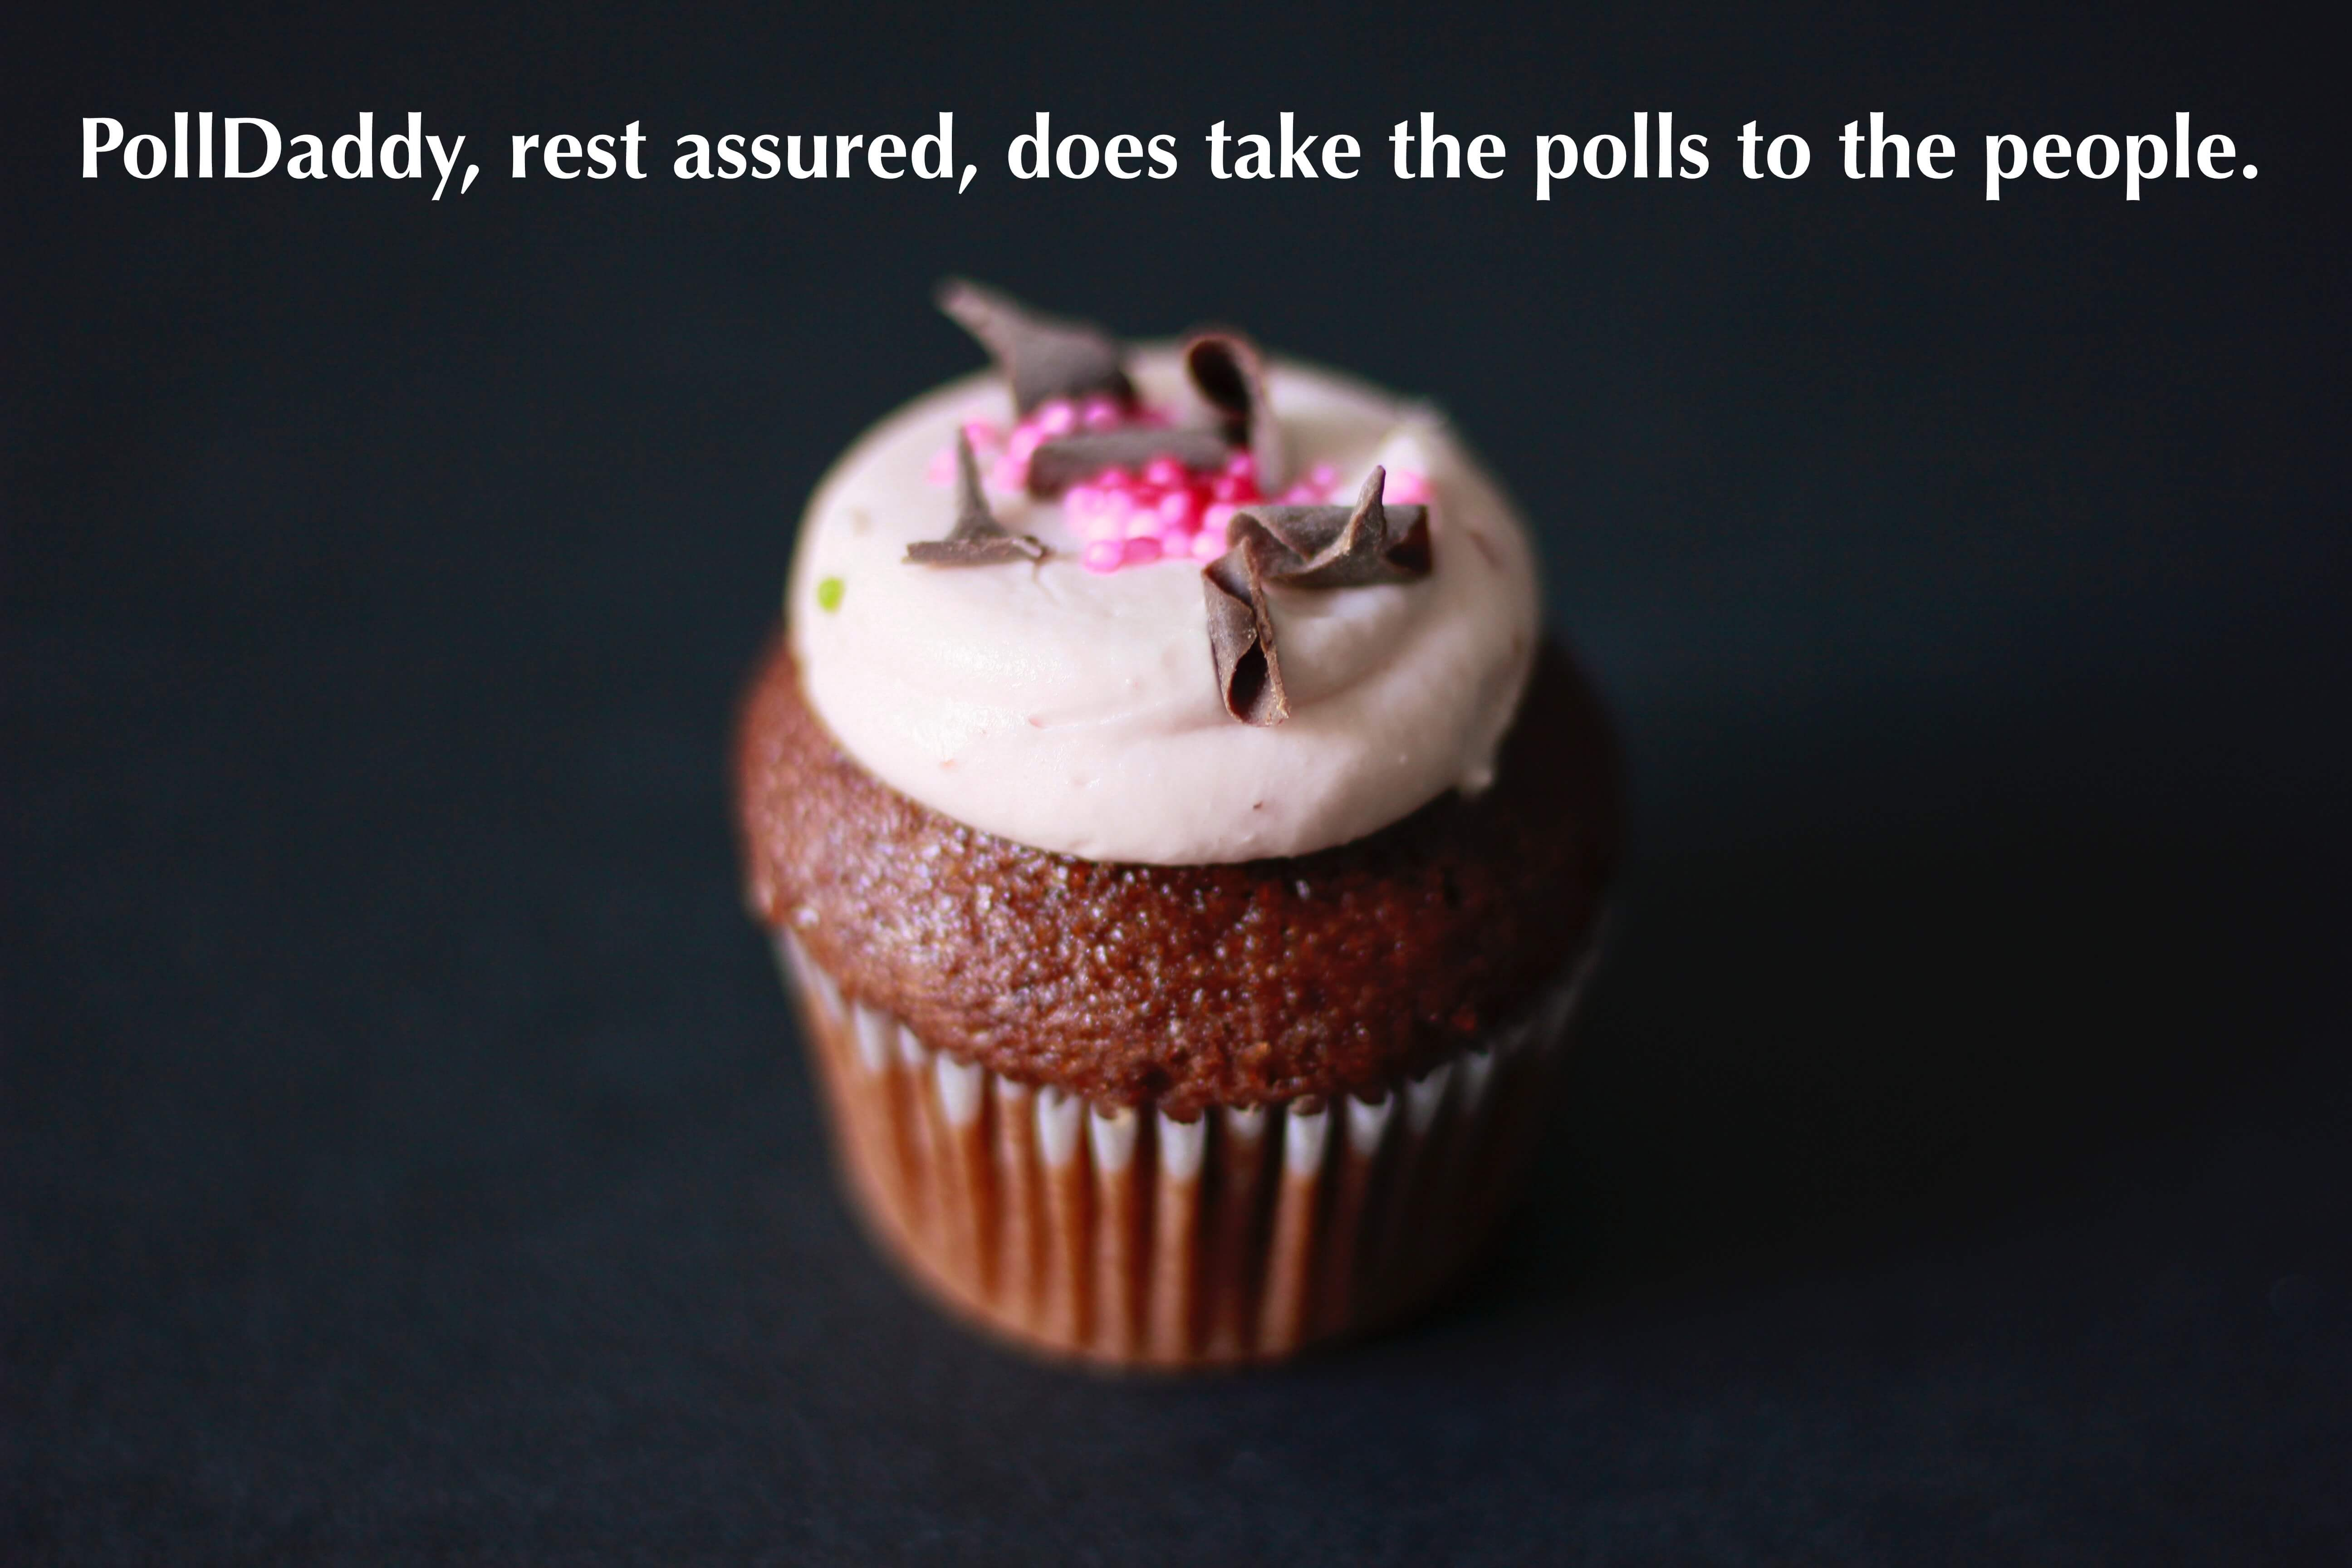 PollDaddy, rest assured, does take the polls to the people. It is one of the best online survey apps out there.